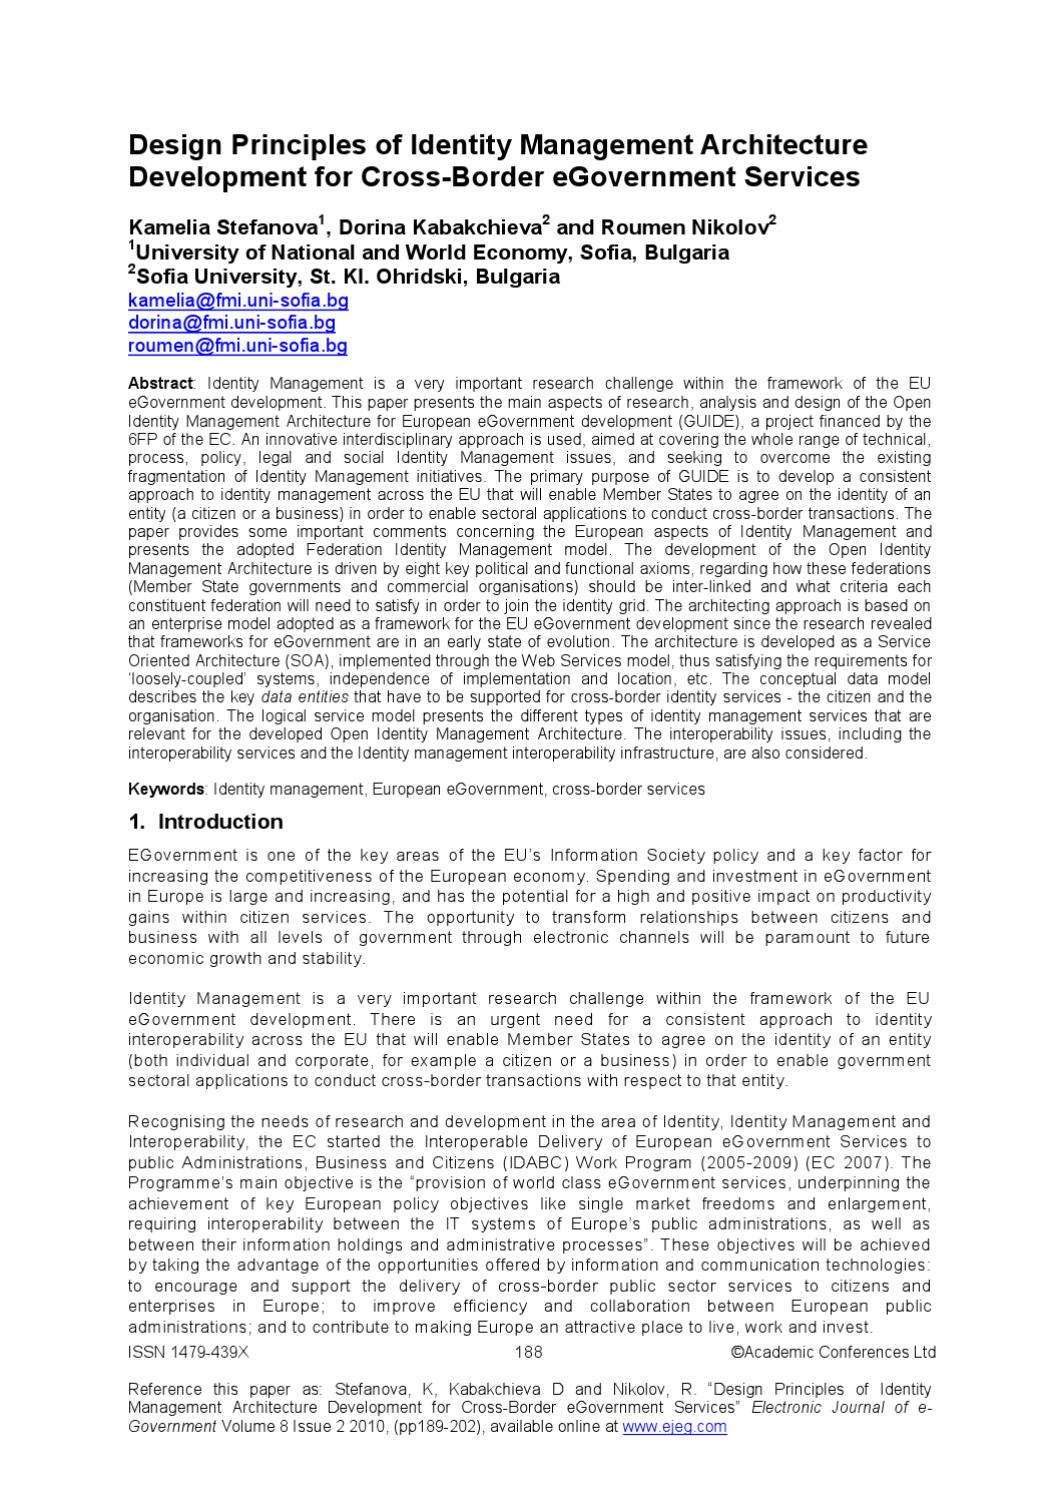 an analysis of national border issues in bulgaria I push-backs and violence at the bulgarian border   this situation poses  serious challenges for the country both in terms of the  analyzed parts of the  public discourse concerning asylum-seekers and refugees the main.